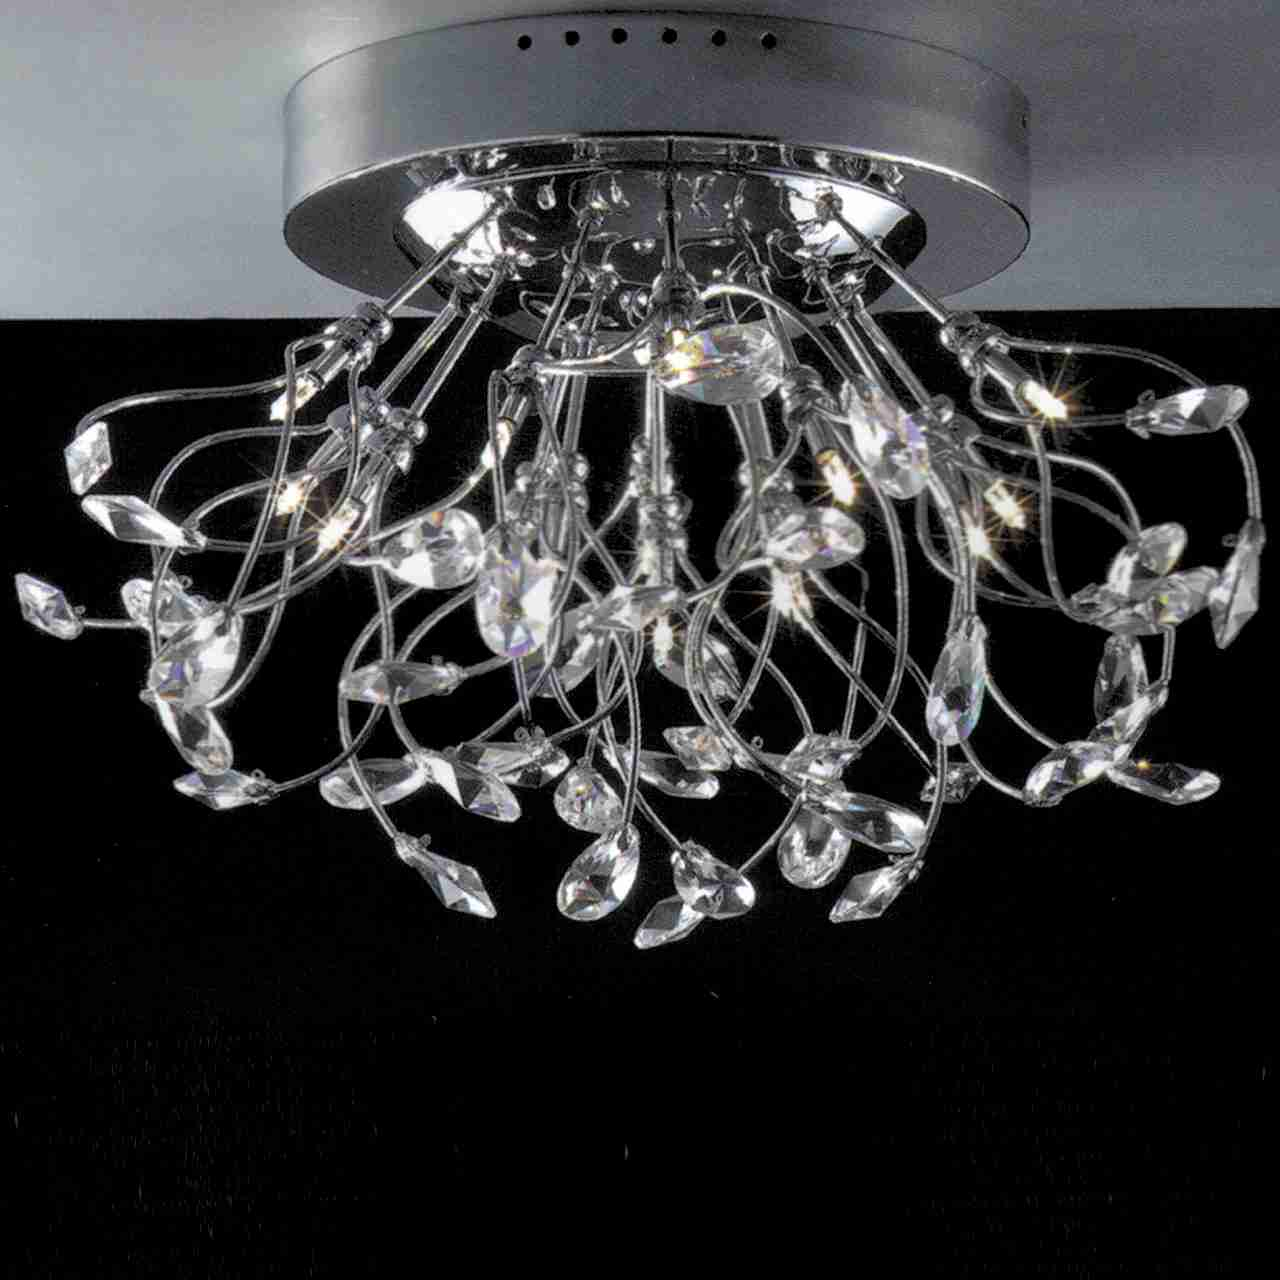 Brizzo lighting stores 24 tempesta modern crystal flush mount picture of 24 tempesta modern crystal flush mount round chandelier polished chrome brushed nickel arubaitofo Images